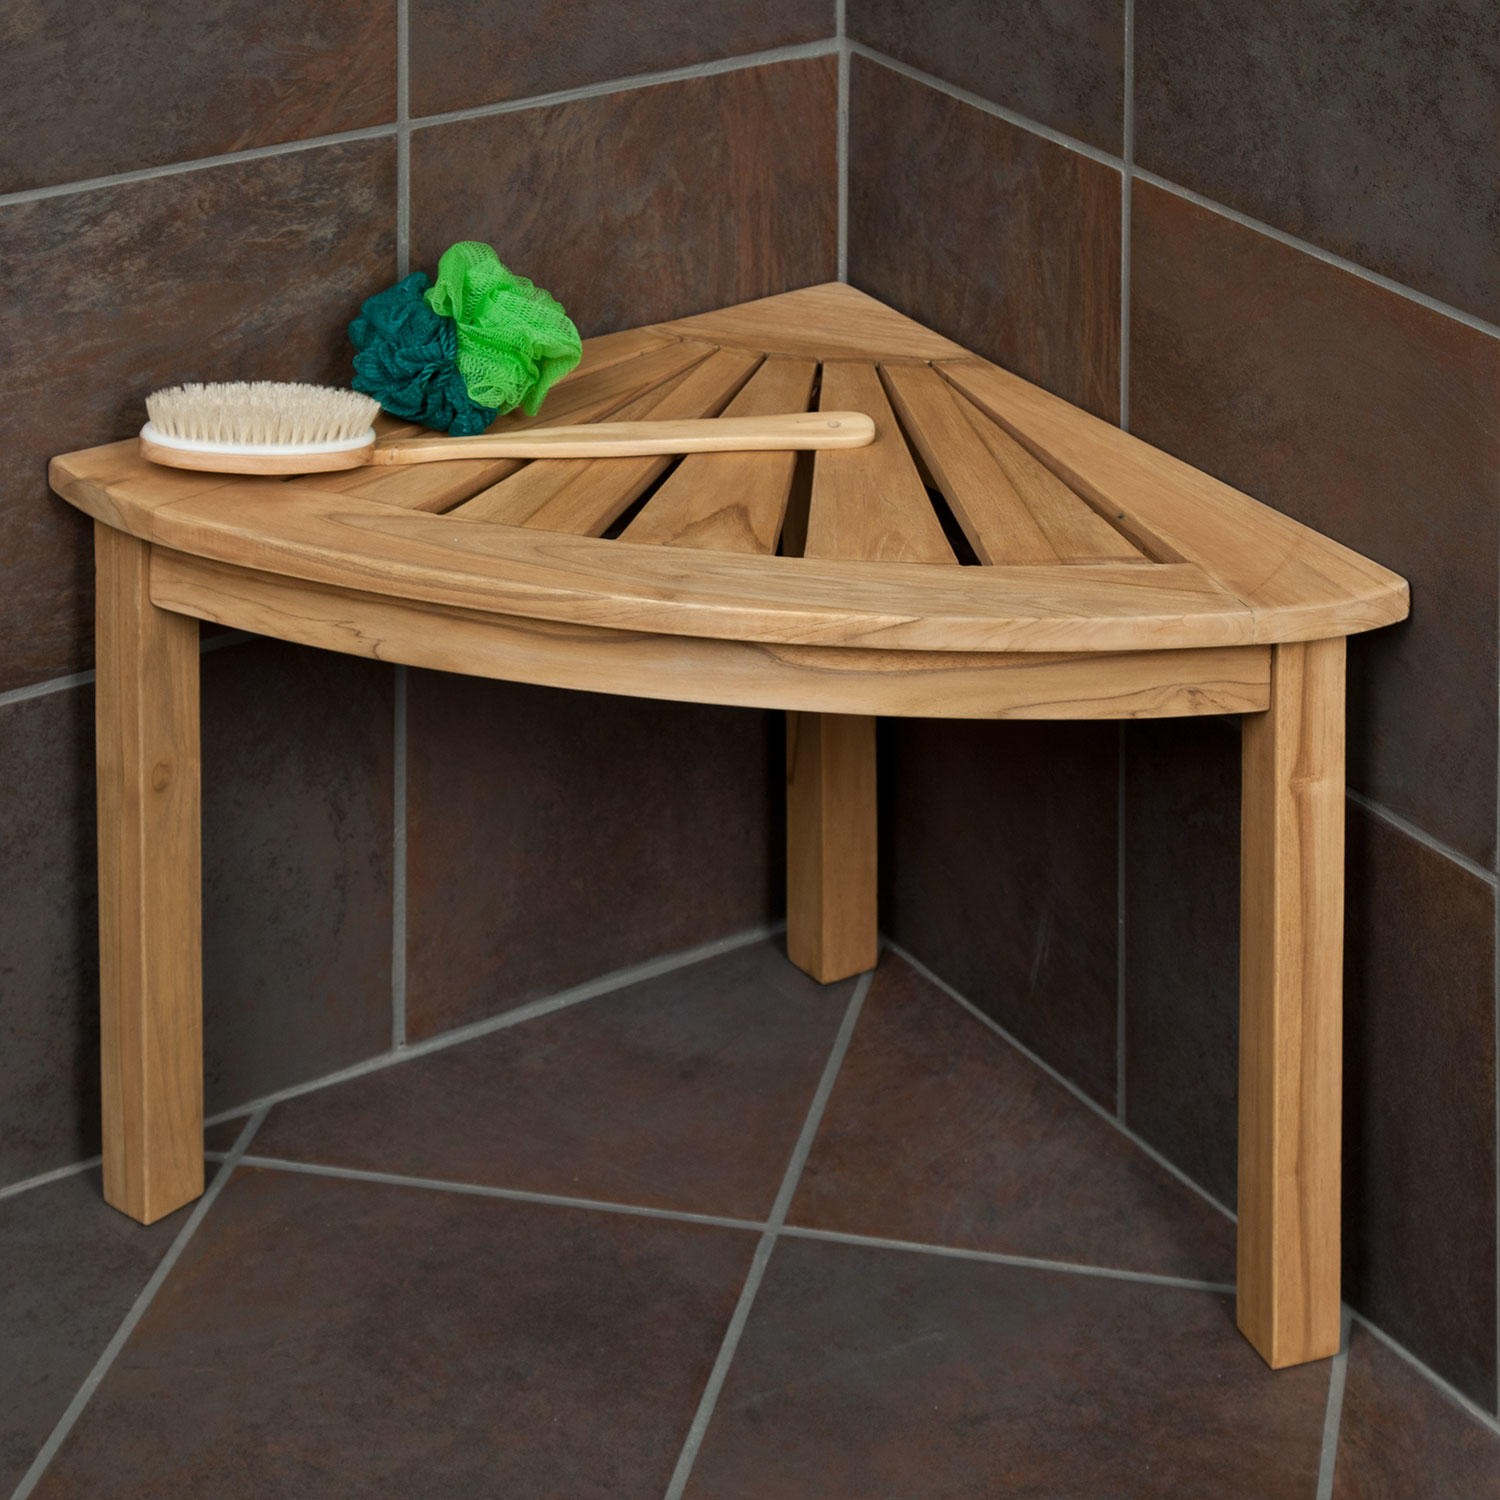 Wooden Shower Bench Shapes